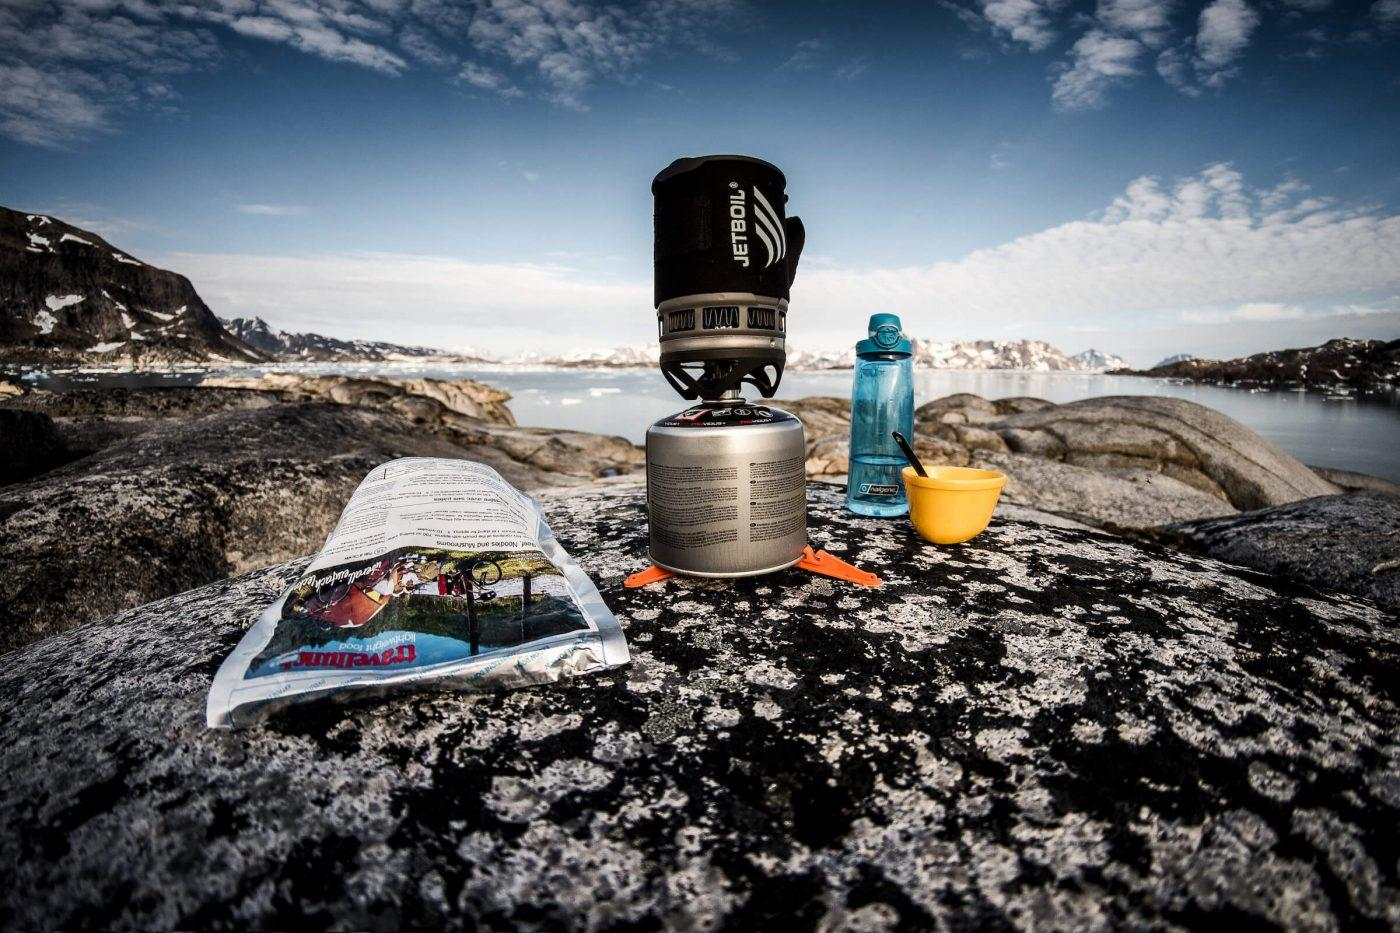 Cooking gear and freeze dried food on a rock near Kulusuk in East Greenland. By Mads Pihl